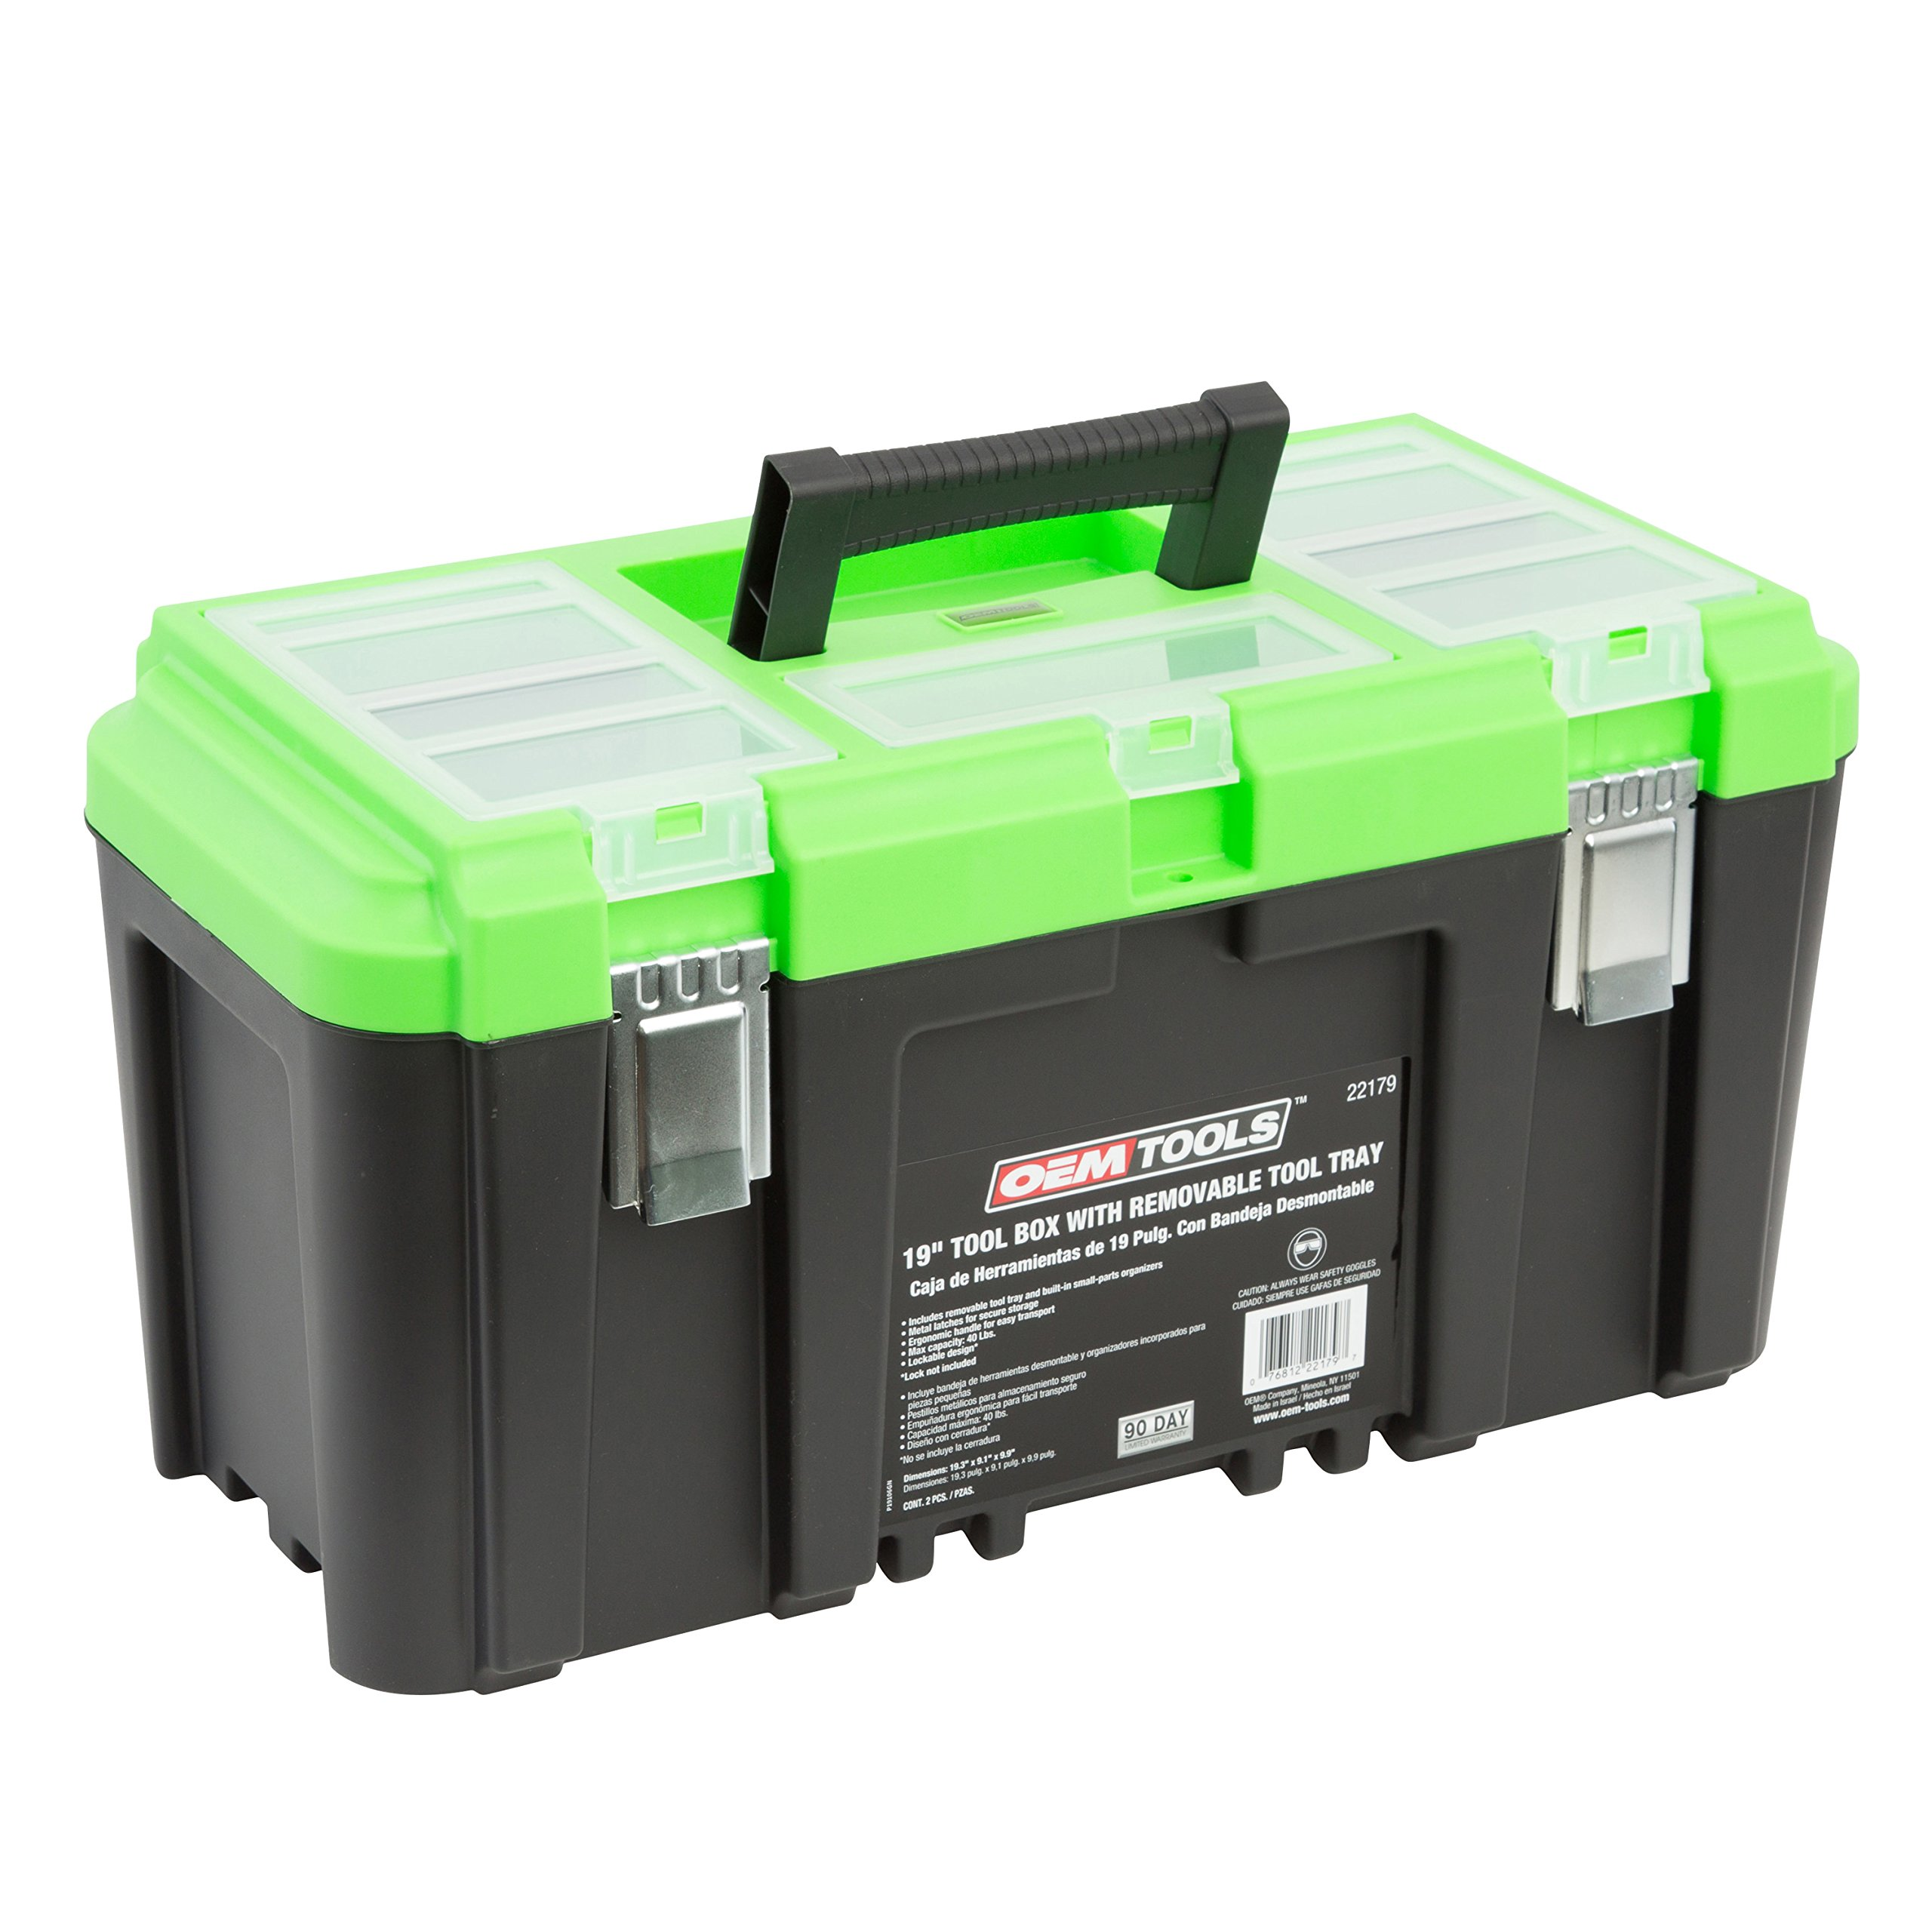 OEMTOOLS 22179 19'' Tool Box with Removable Tool Tray